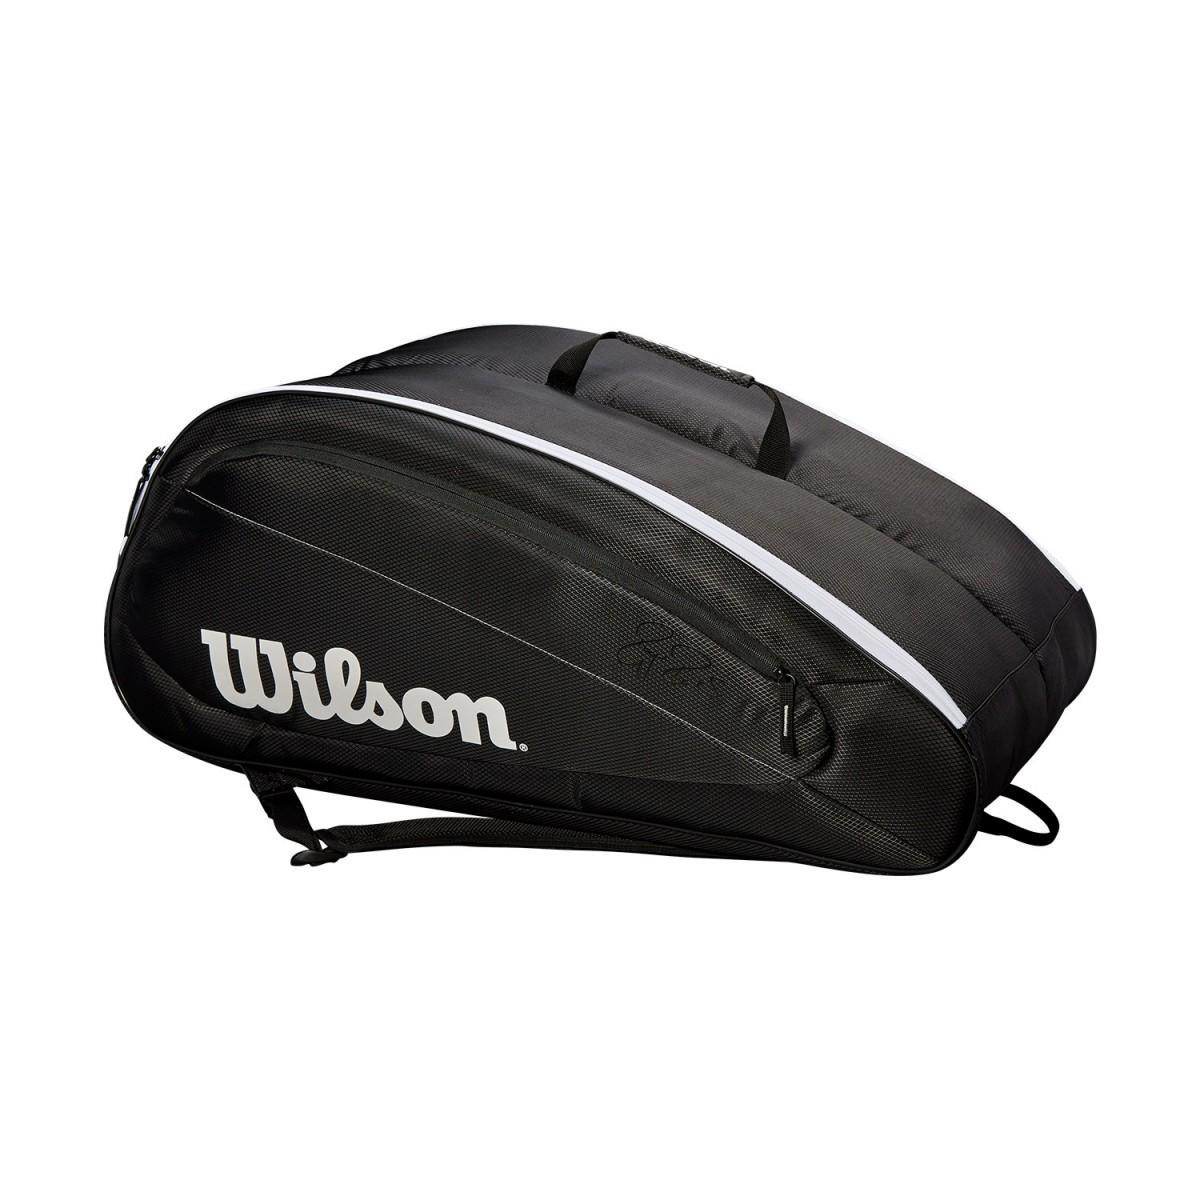 Теннисная сумка Wilson Fed Team 12 Pk Bag black/white